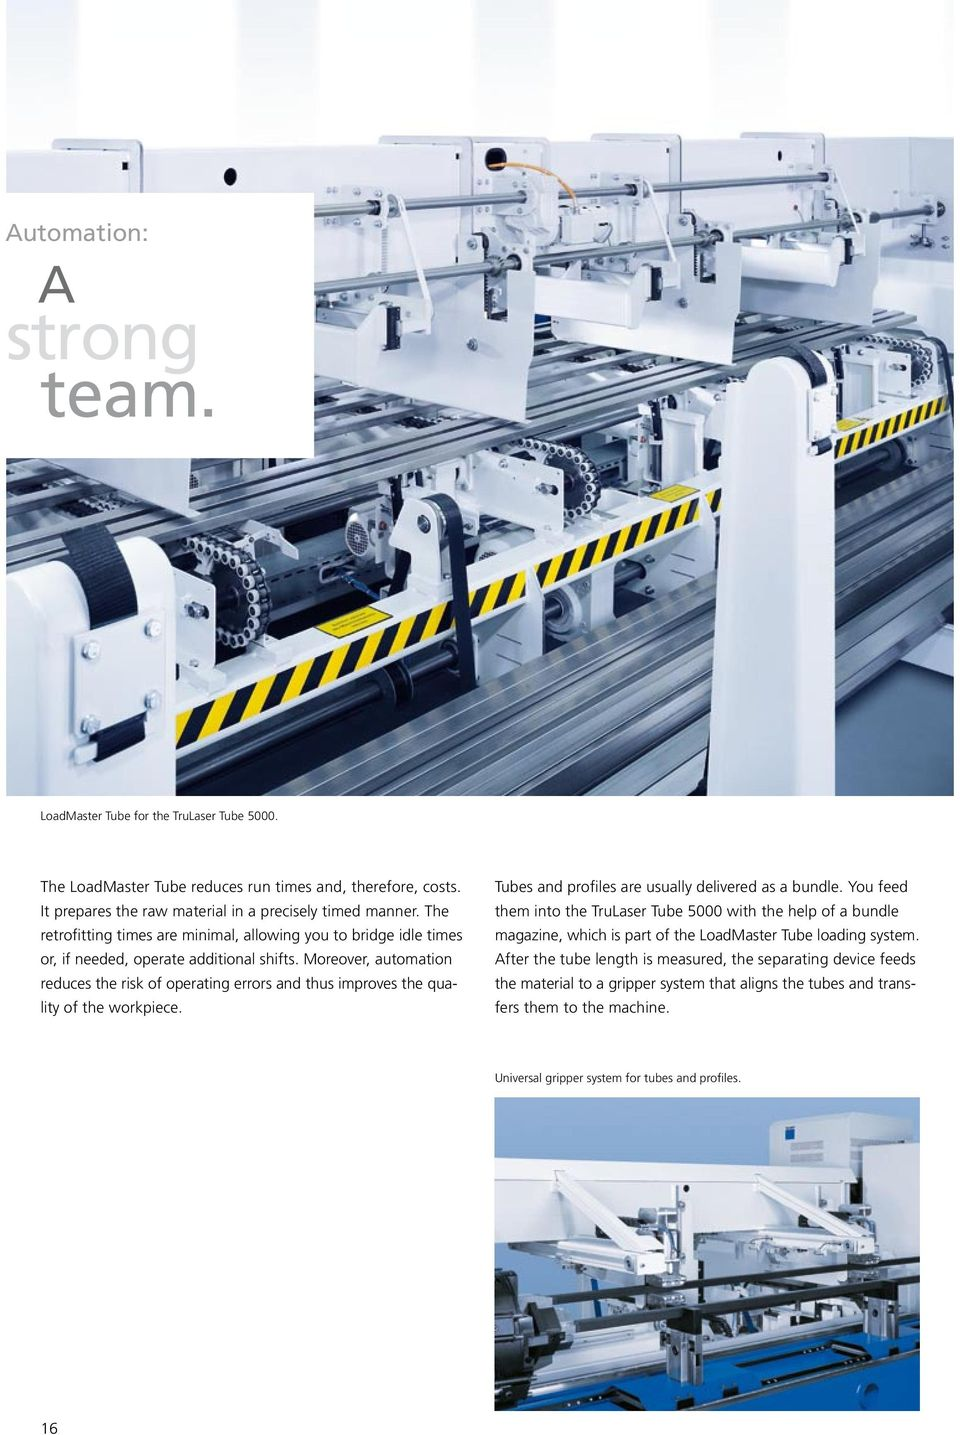 Moreover, automation reduces the risk of operating errors and thus improves the quality of the workpiece. Tubes and profiles are usually delivered as a bundle.